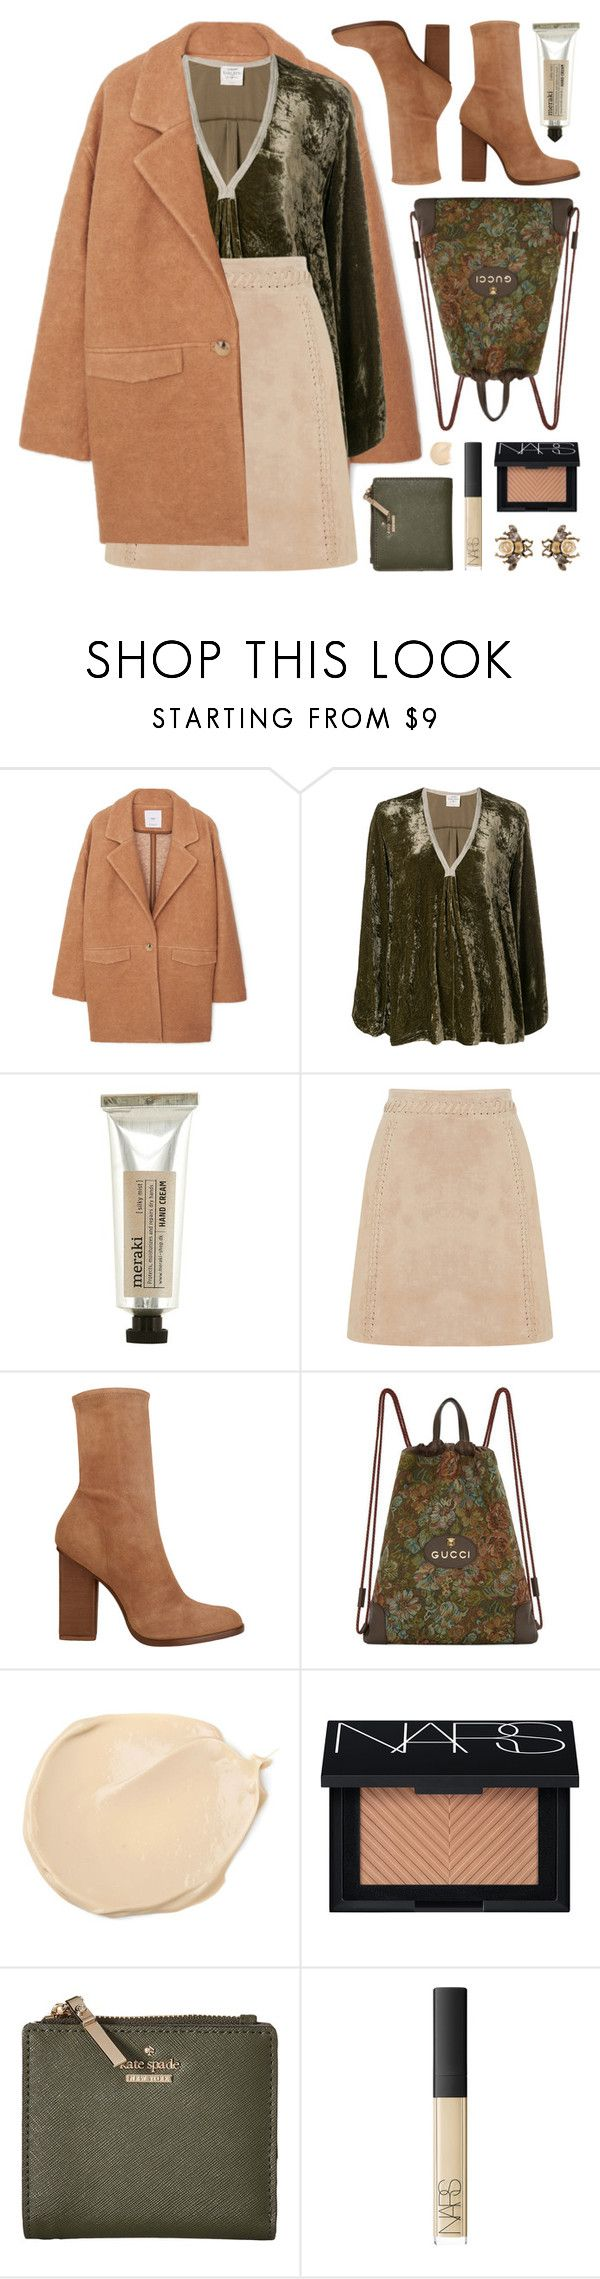 """""""suede mini skirt"""" by jesuisunlapin ❤ liked on Polyvore featuring MANGO, Forte Forte, Meraki, Oasis, Alexander Wang, Gucci, NARS Cosmetics, Kate Spade, suede and velvet"""